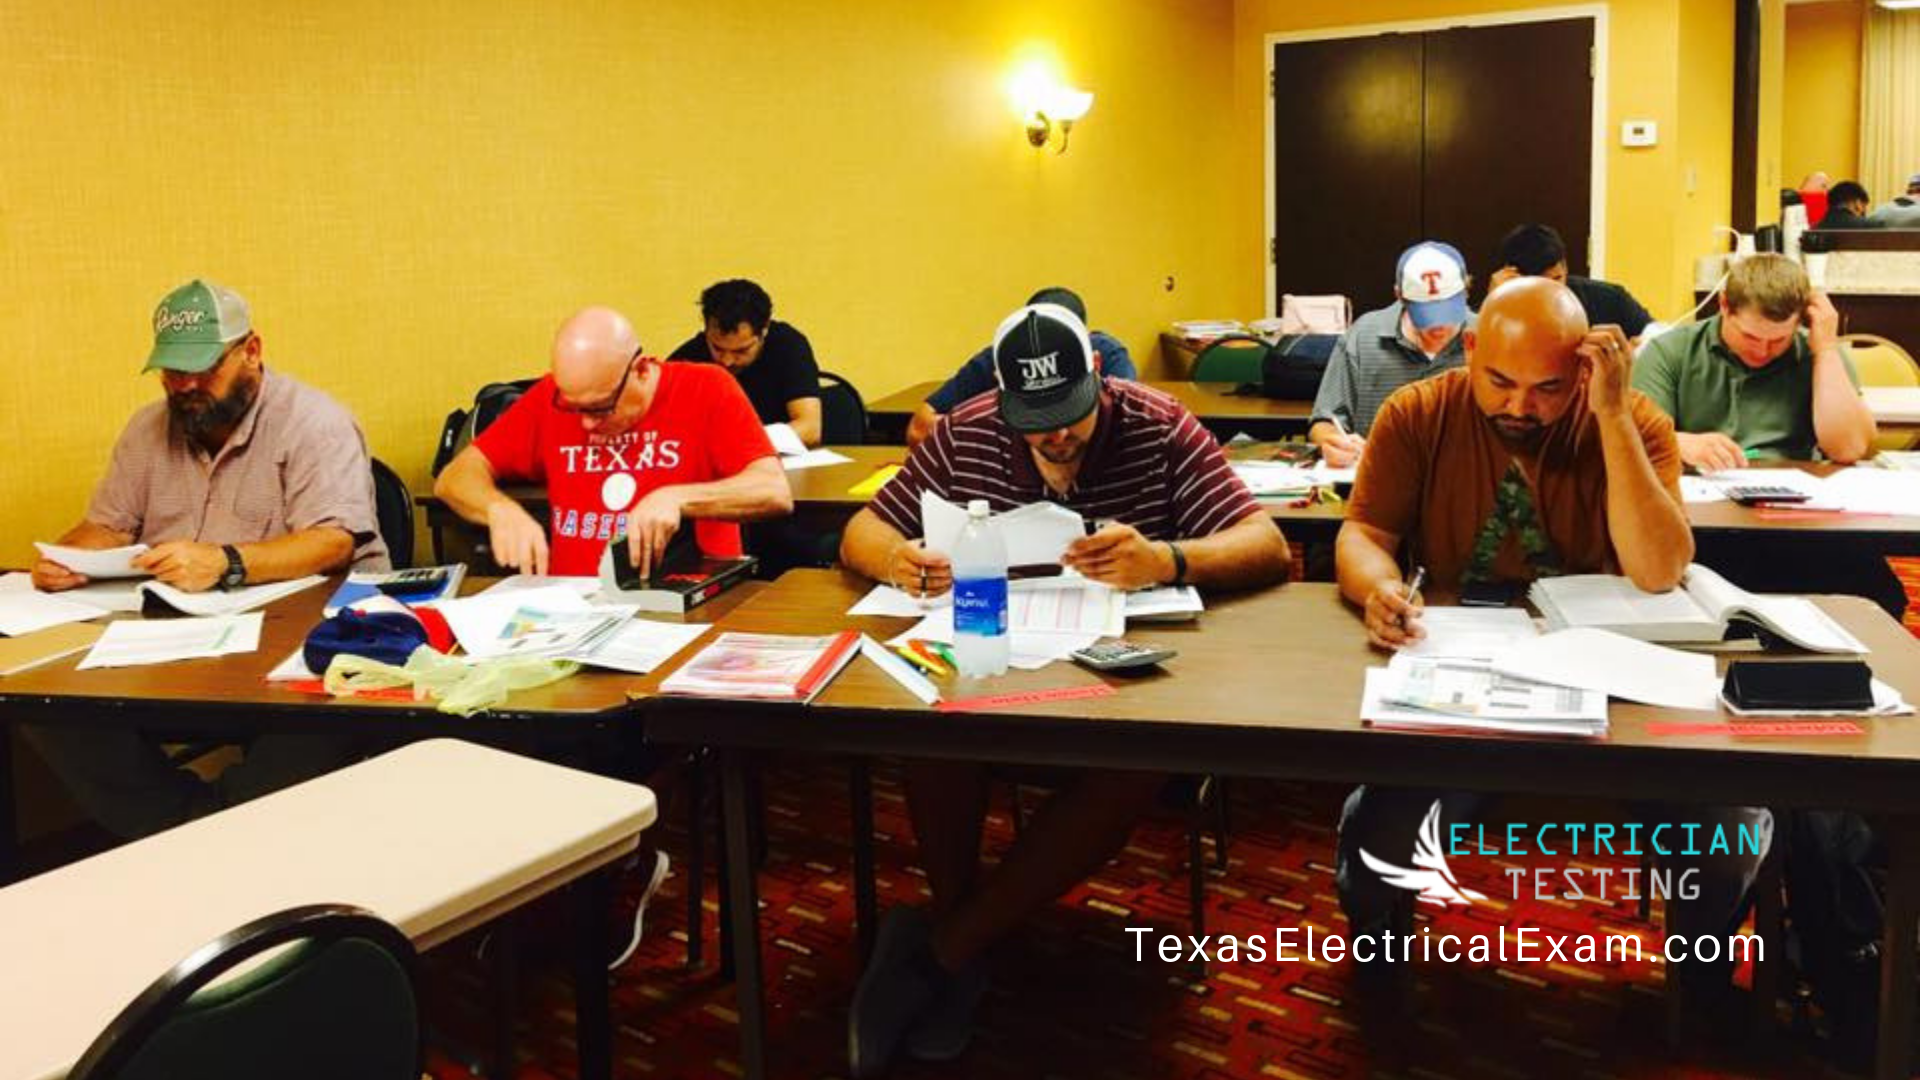 Our students pass the electrical exam